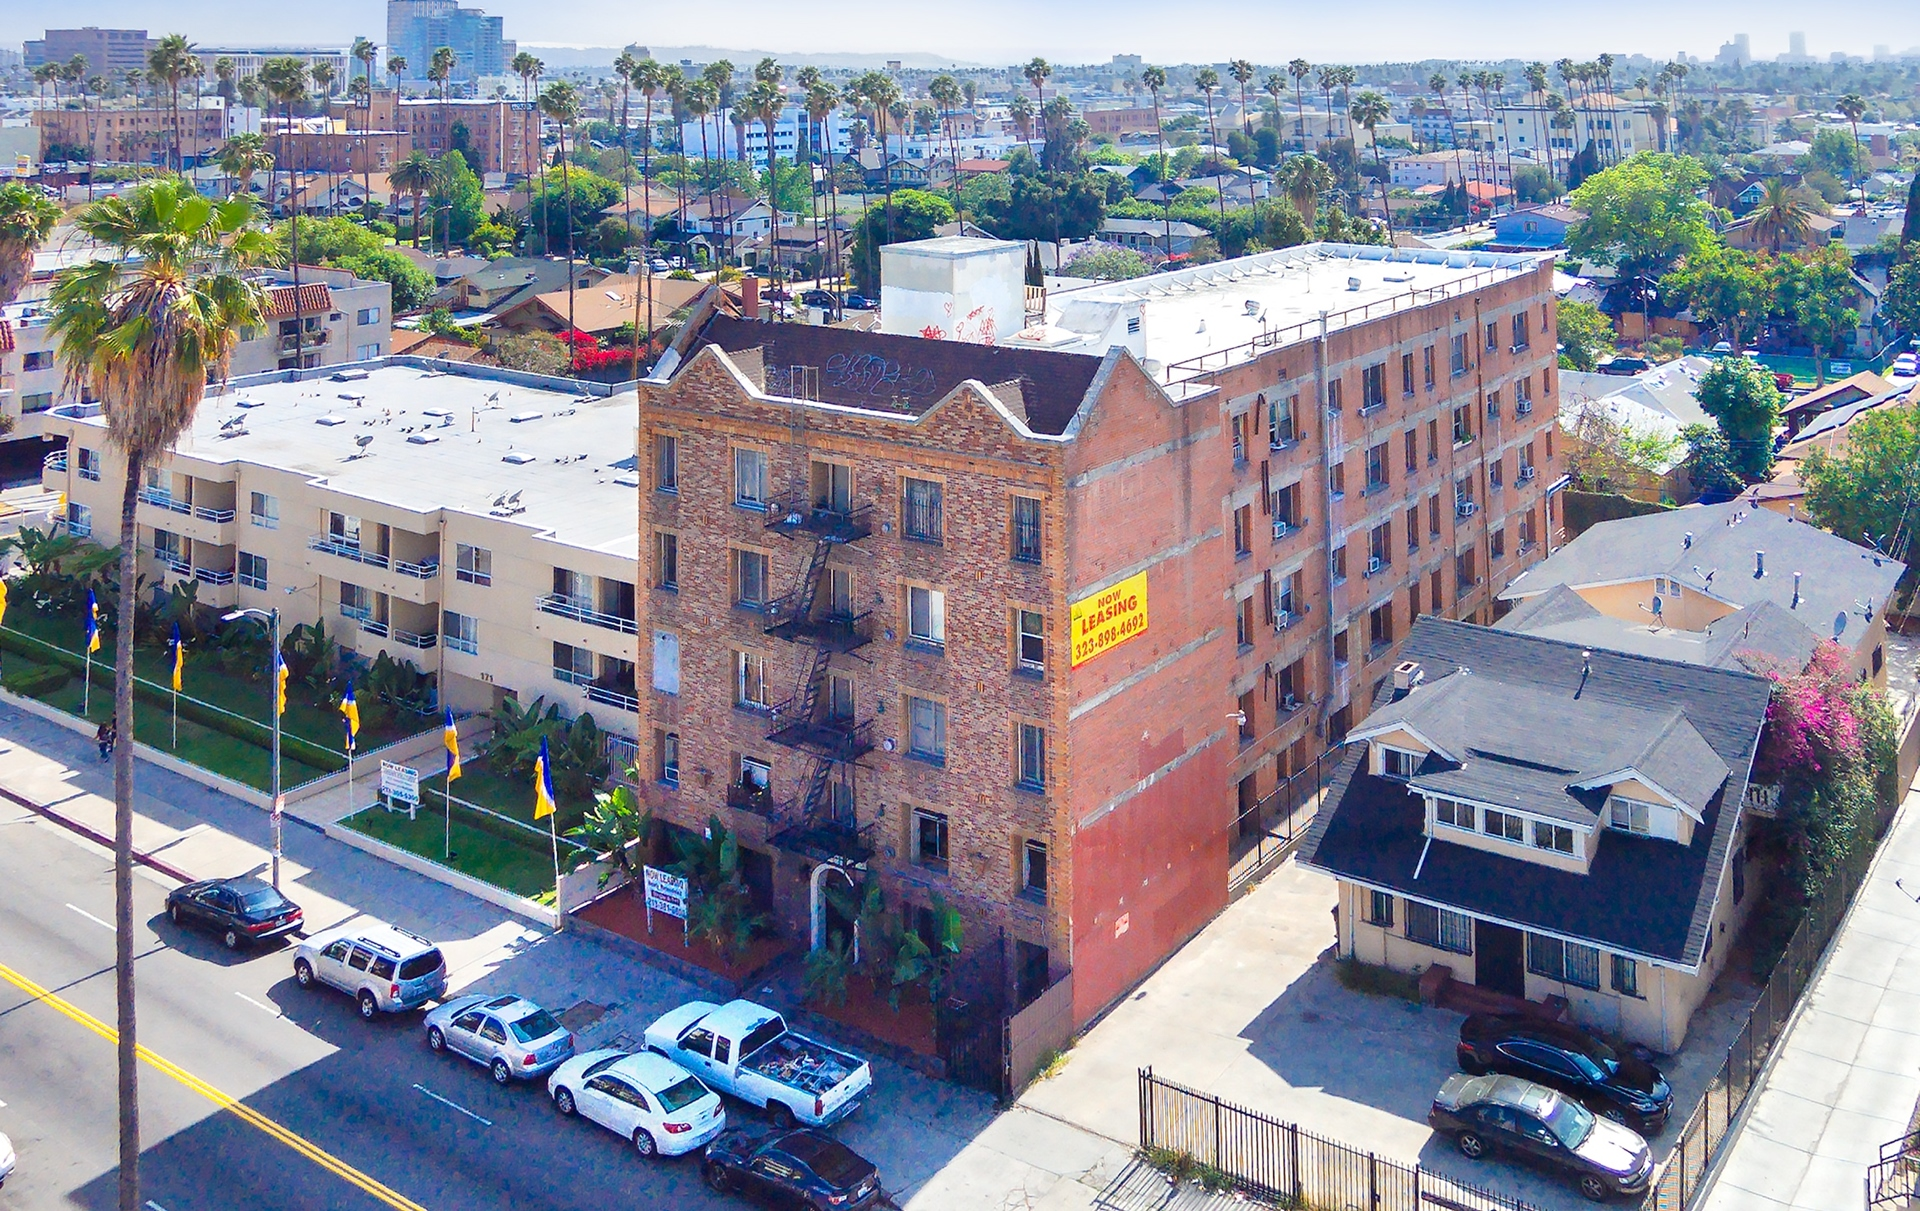 Example of an ideal building for acquisition/preservation. Located in Koreatown, part of a 90-unit complex selling for $193,000 per unit, and high enough density that it is unlikely to be targeted for redevelopment in the future.